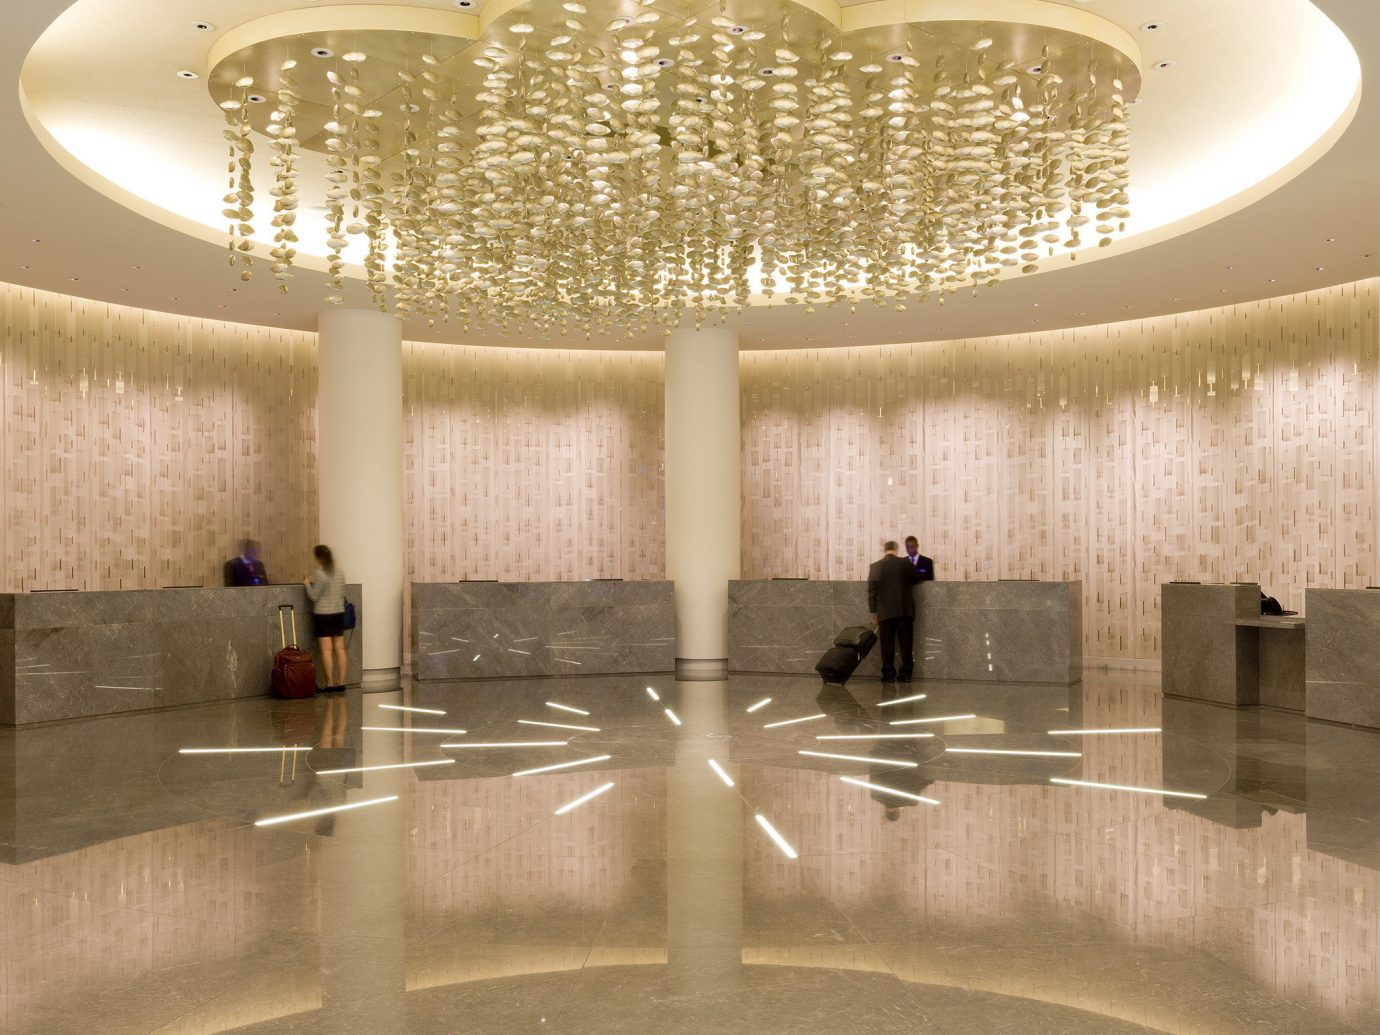 Hotels indoor ceiling Architecture interior design daylighting fountain estate jacuzzi leisure centre amenity swimming pool water basin bathroom